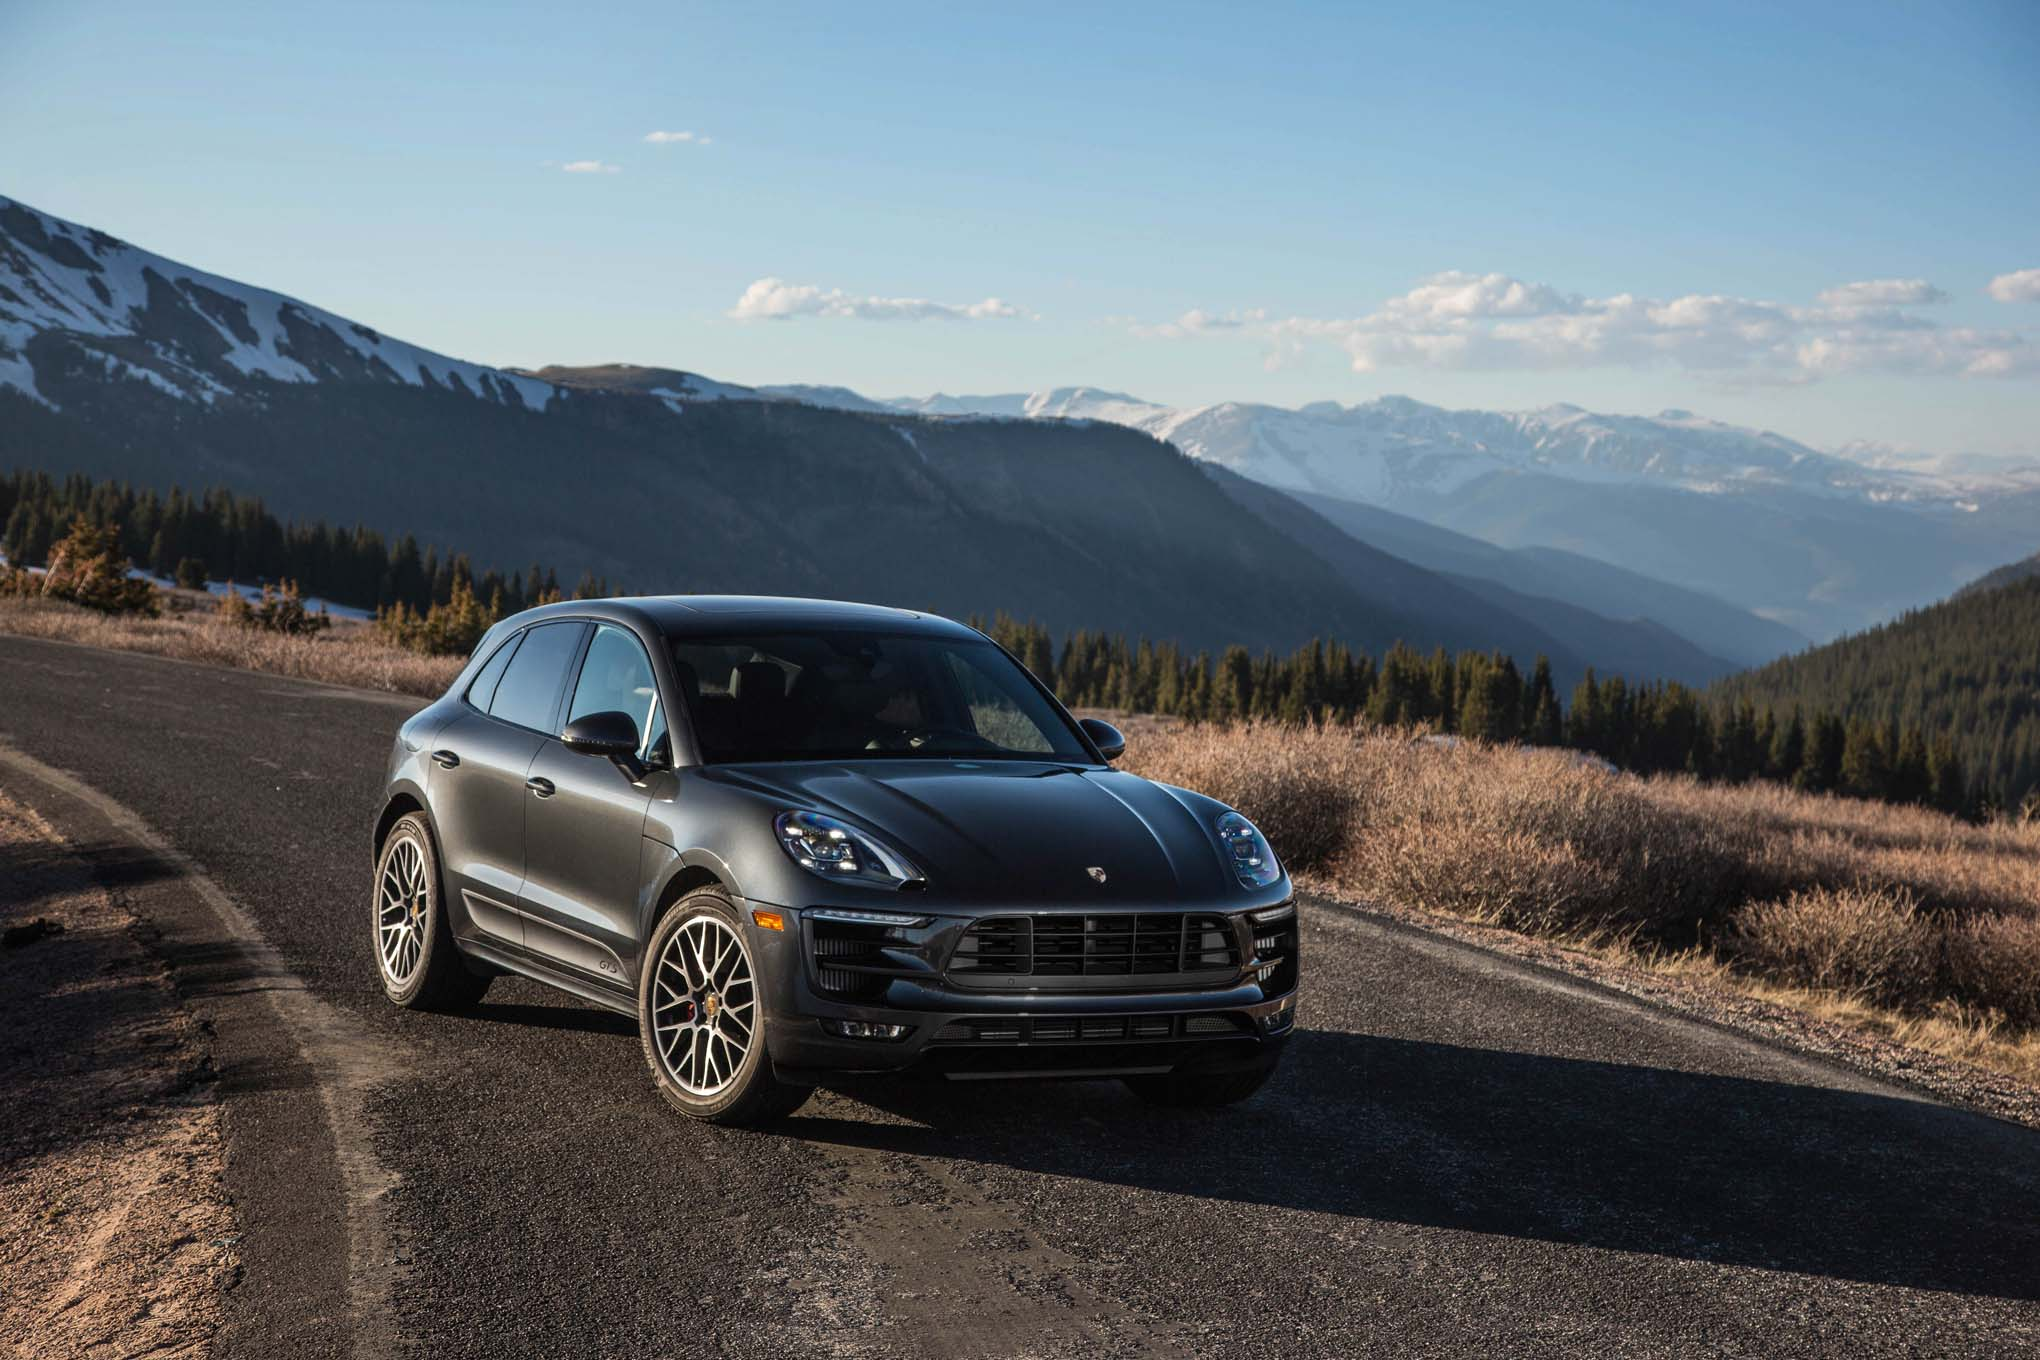 2017 Porsche Macan Adds 252-HP Turbo-Four Base Model